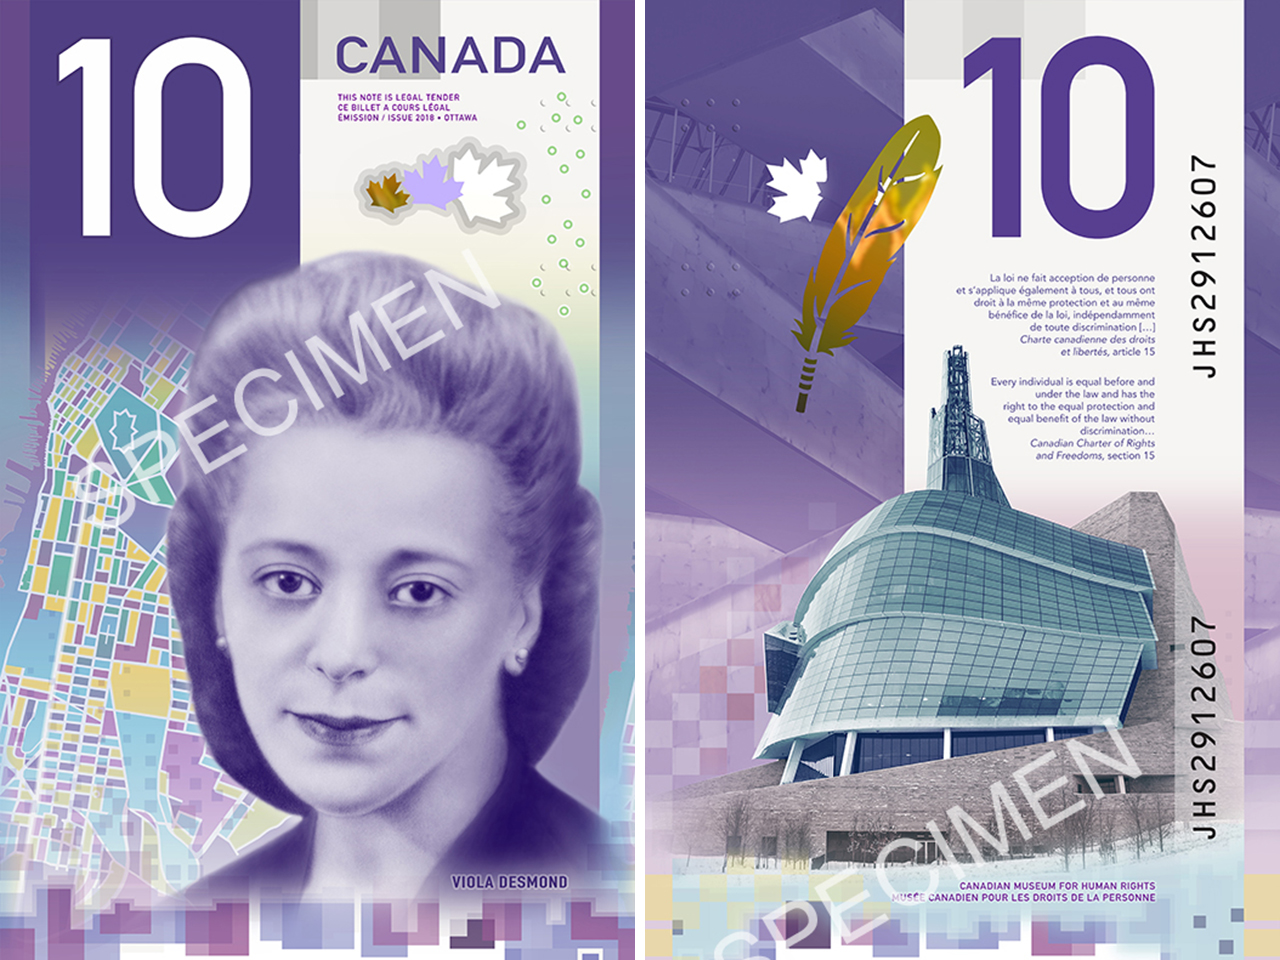 A image of the new $10 bill with Viola Desmond on it